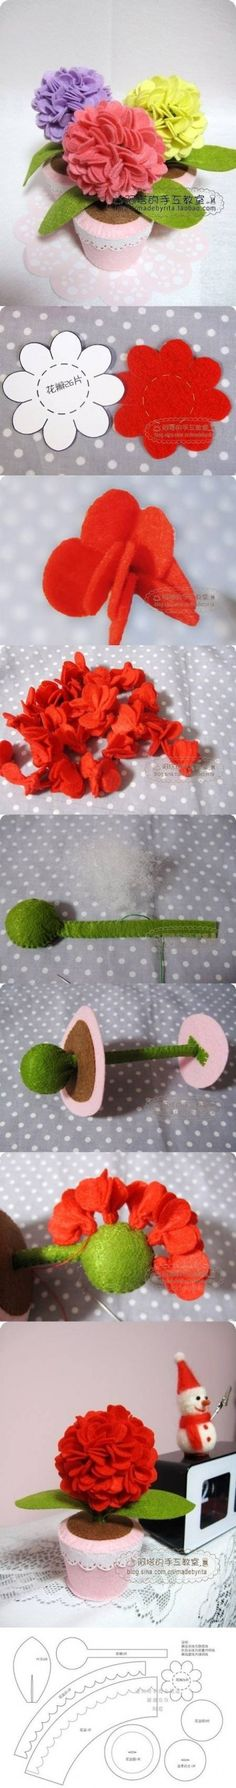 #Felt, #Fieltro Flores de fieltro DIY Felt Hydrangea Flower DIY Projects                                                                                                                                                                                 Más